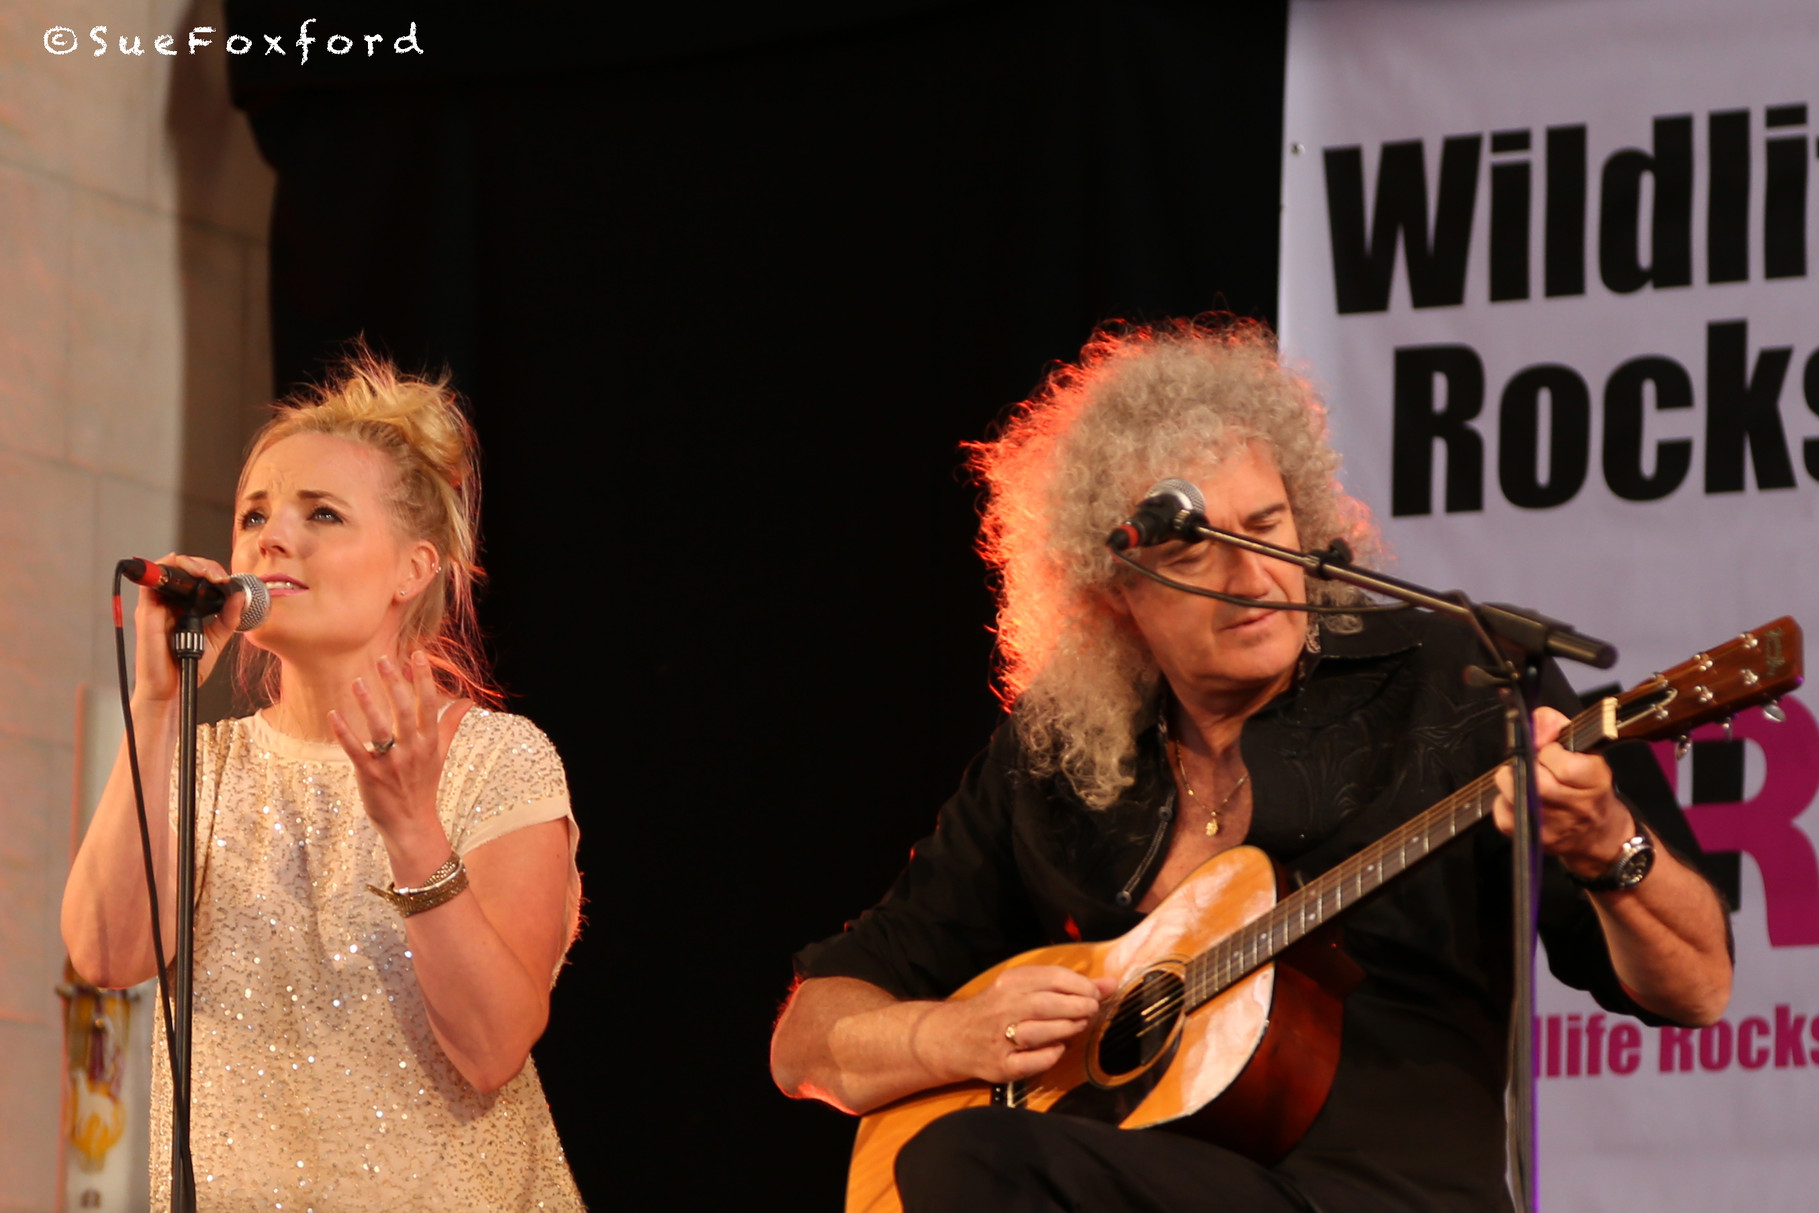 Kerry Ellis, Brian May  - @SueFoxford